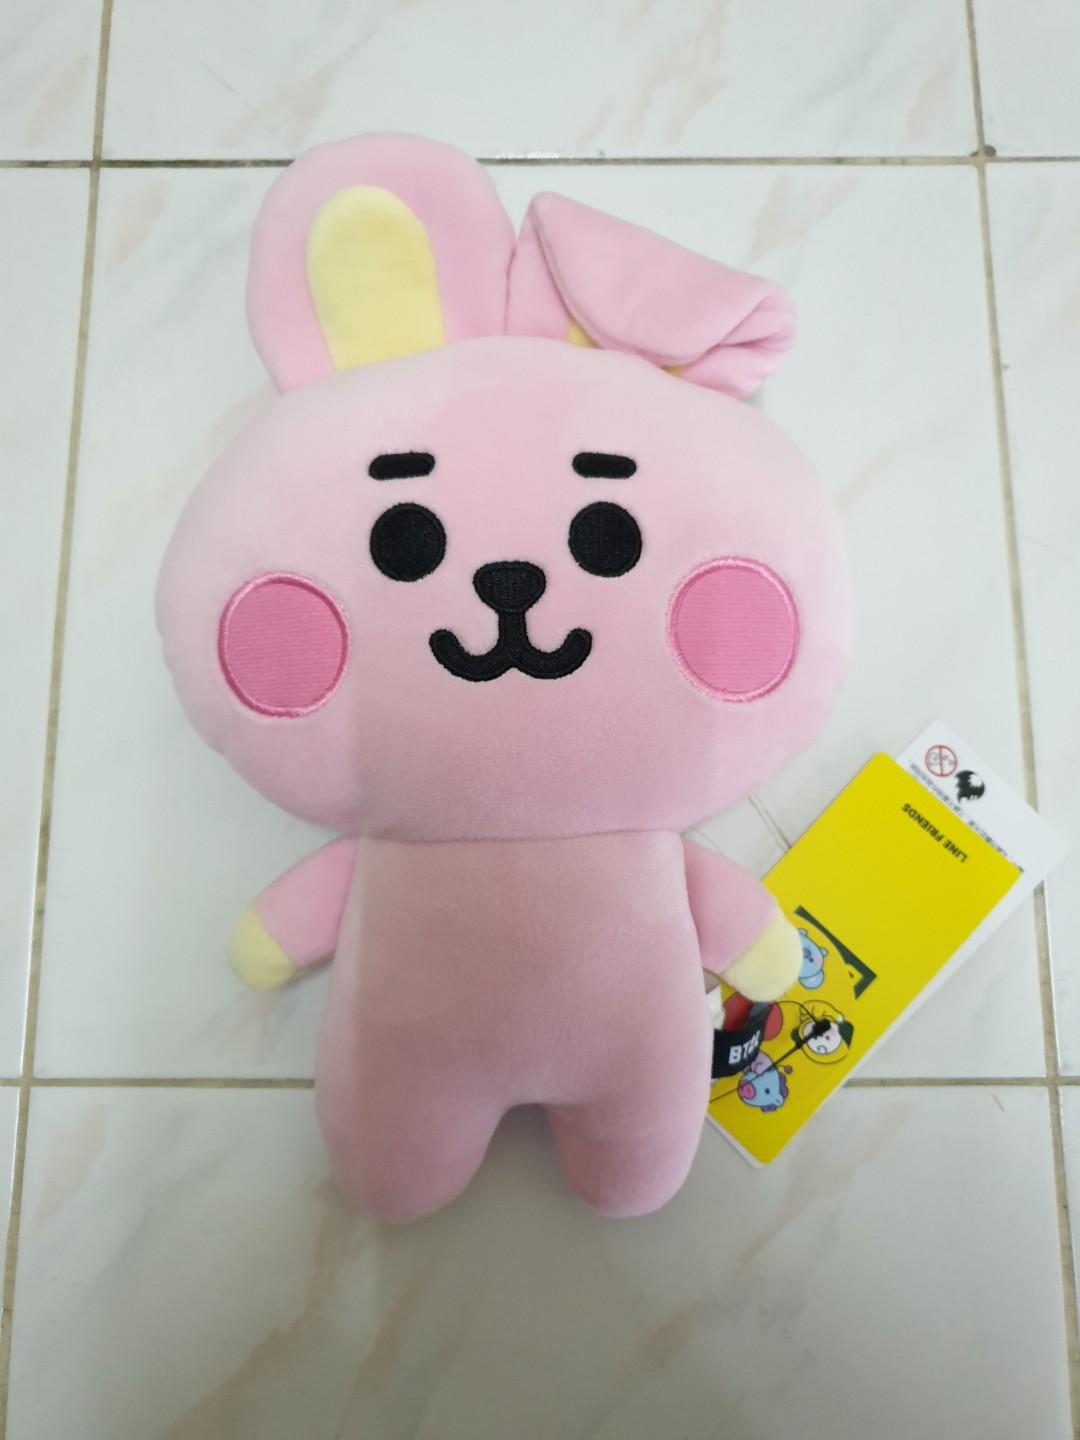 BT21 BABY cooky flat body plush toy cushion bts jungkook